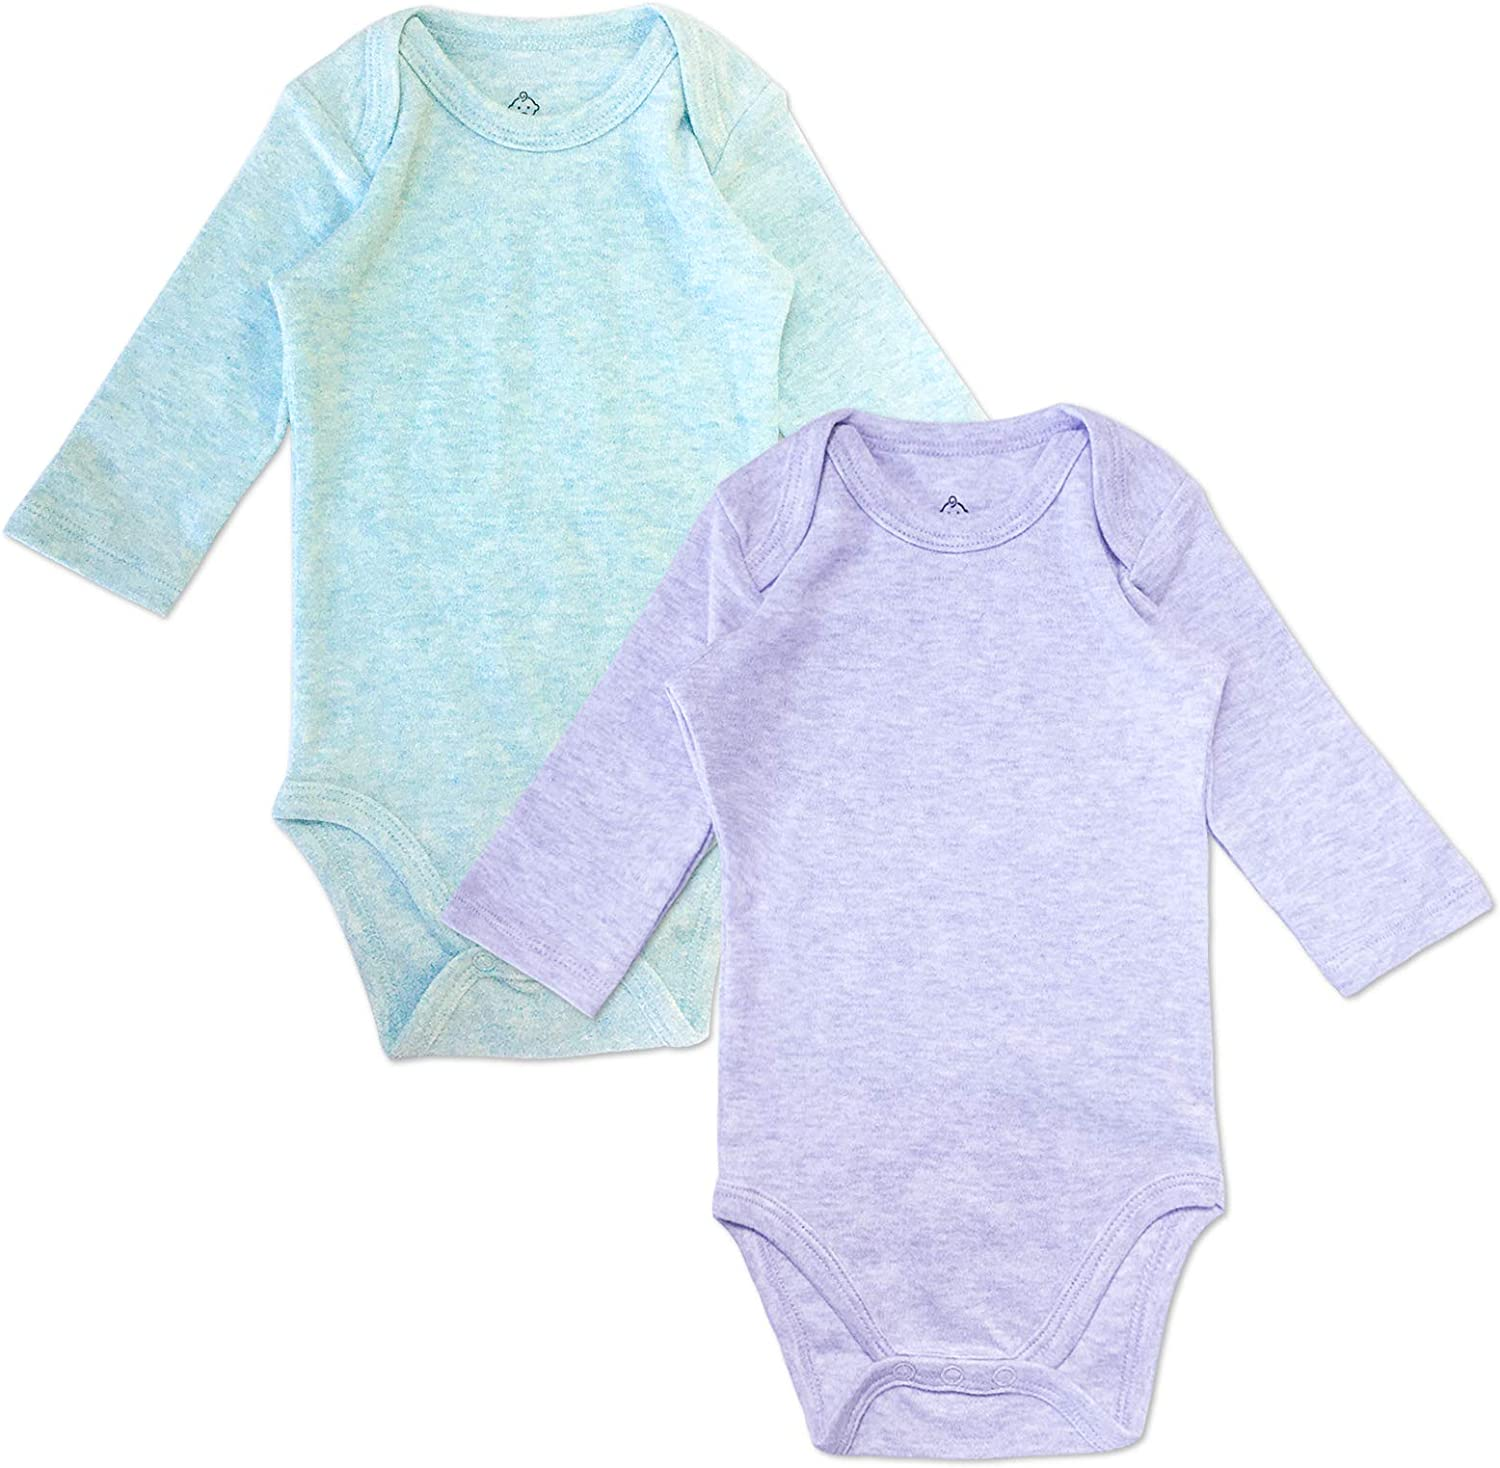 DEFAHN Unisex Baby Bodysuit Solid Long Sleeve 2-Pack One-Piece Cotton Undershirt for Girls Boys 0-24 Months